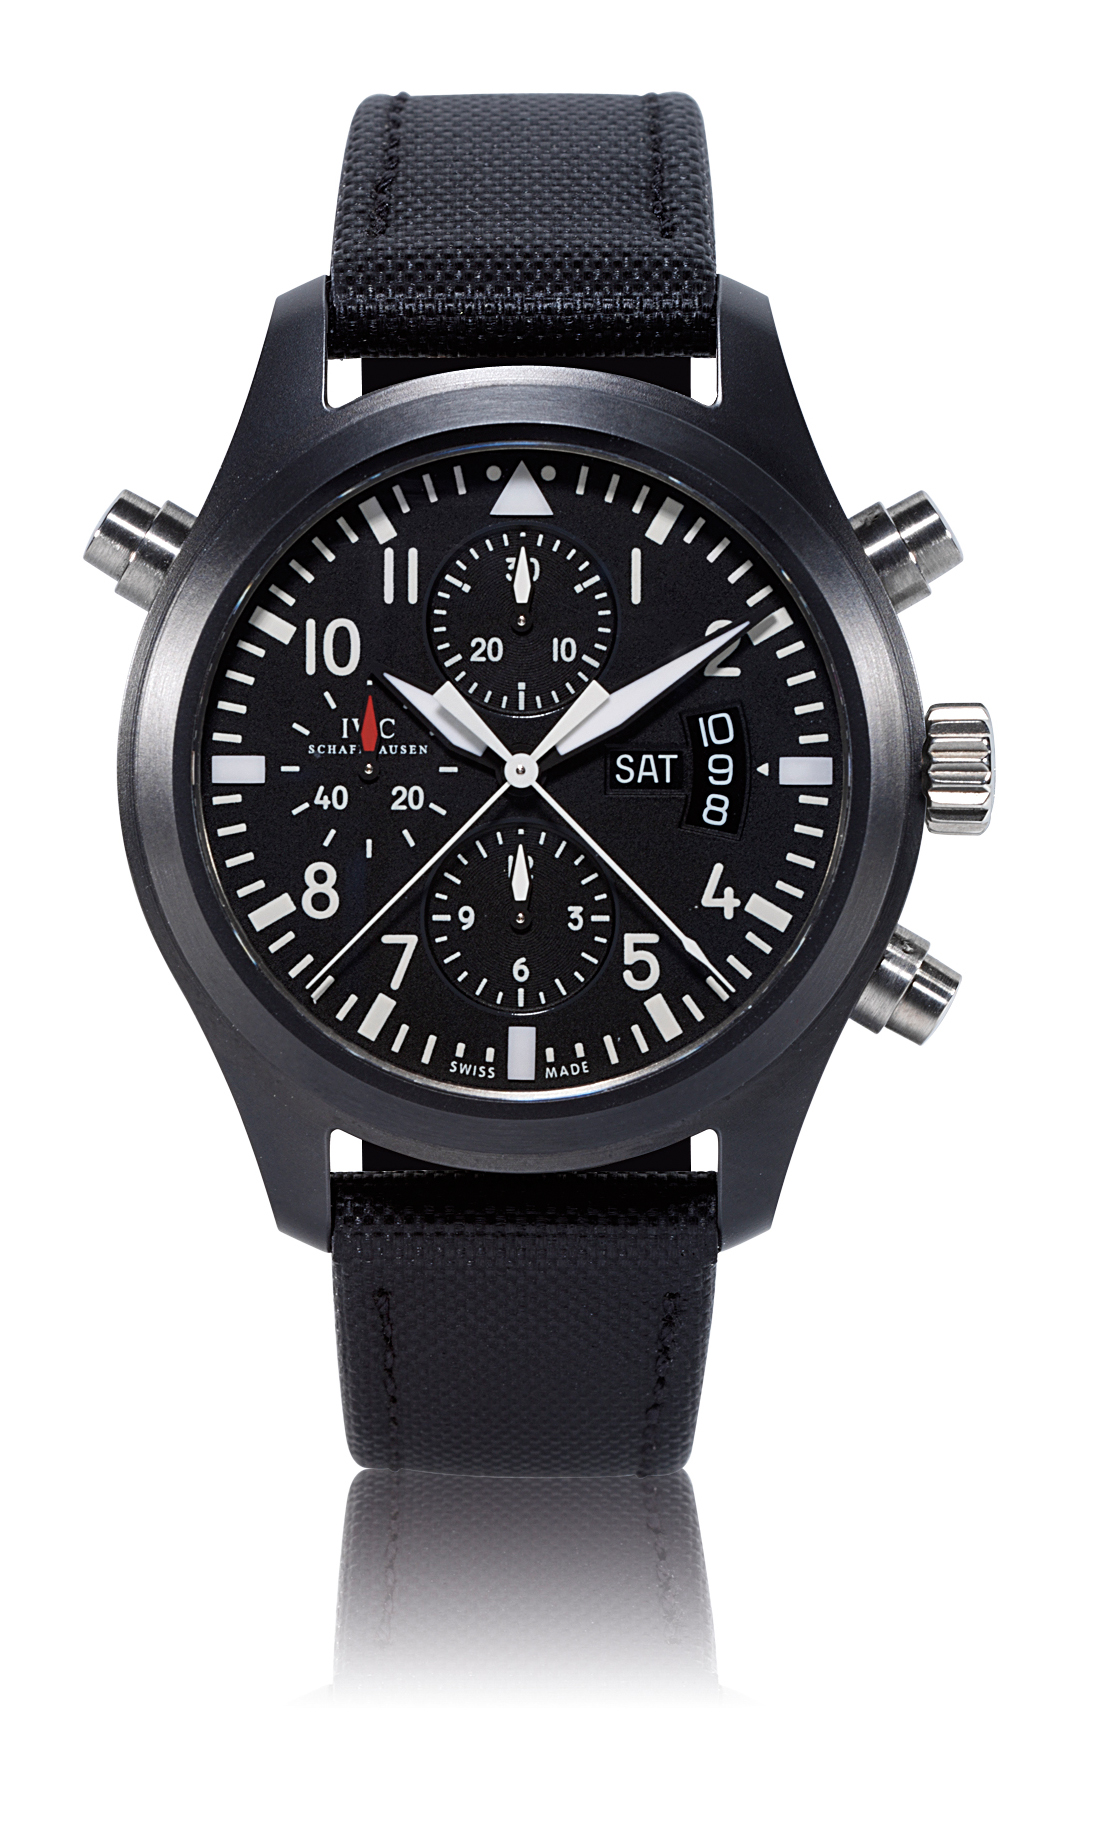 IWC, FLIEGERUHR, DOUBLE CHRONOGRAPH  BLACK CERAMIC AUTOMATIC PILOT'S SPLIT SECONDS CHRONOGRAPH WRISTWATCH WITH DAY AND DATE DISPLAY, LIMITED EDITION OF 1000